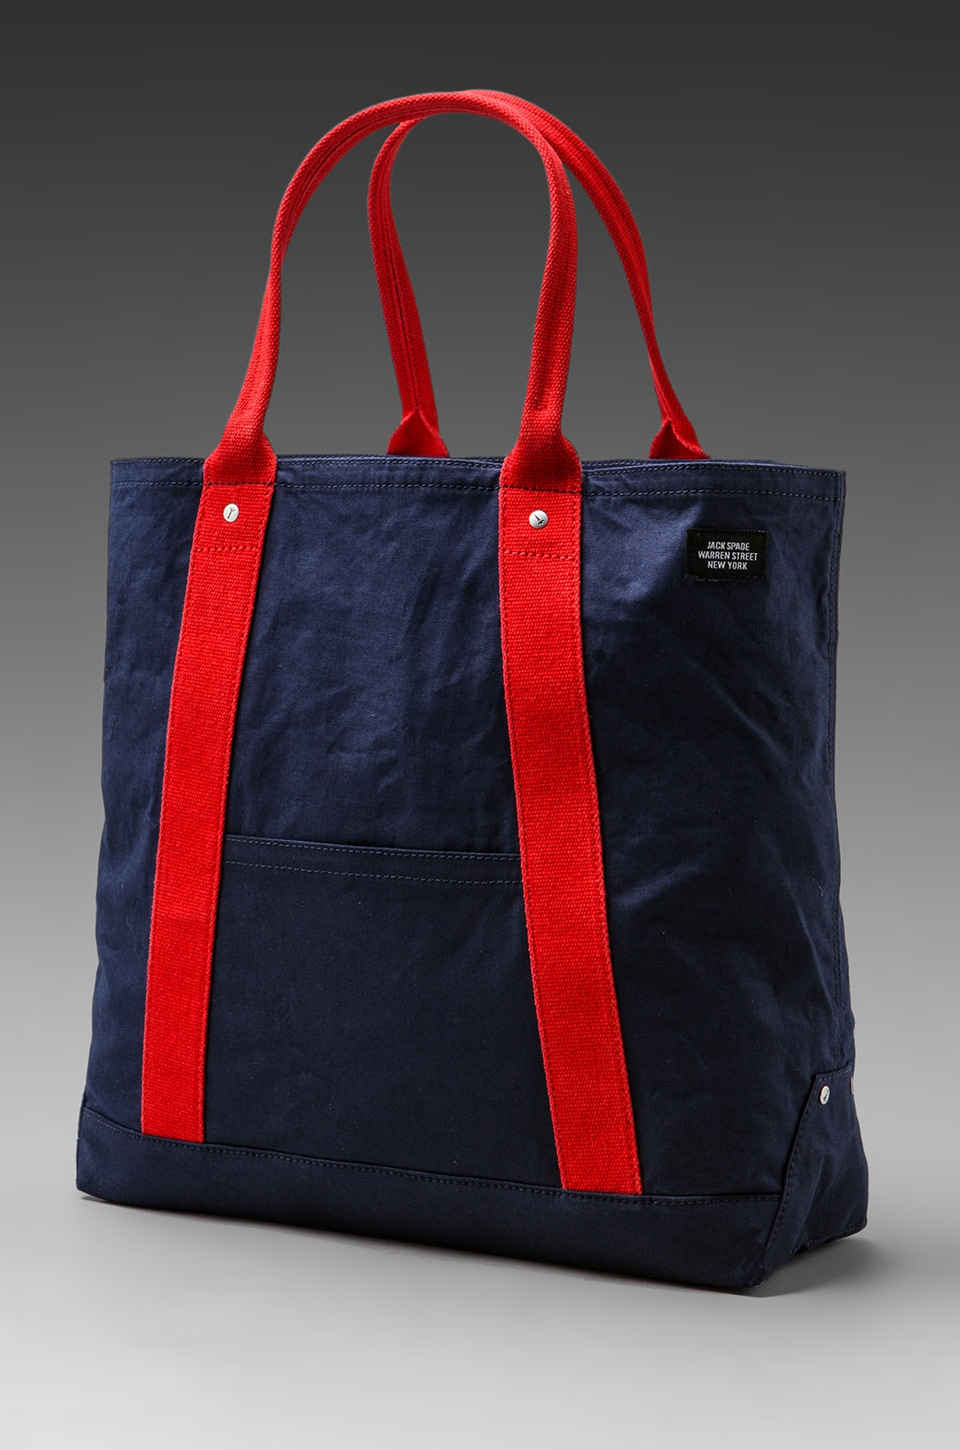 Jack Spade Artist Canvas 101 Tote in Navy/Red